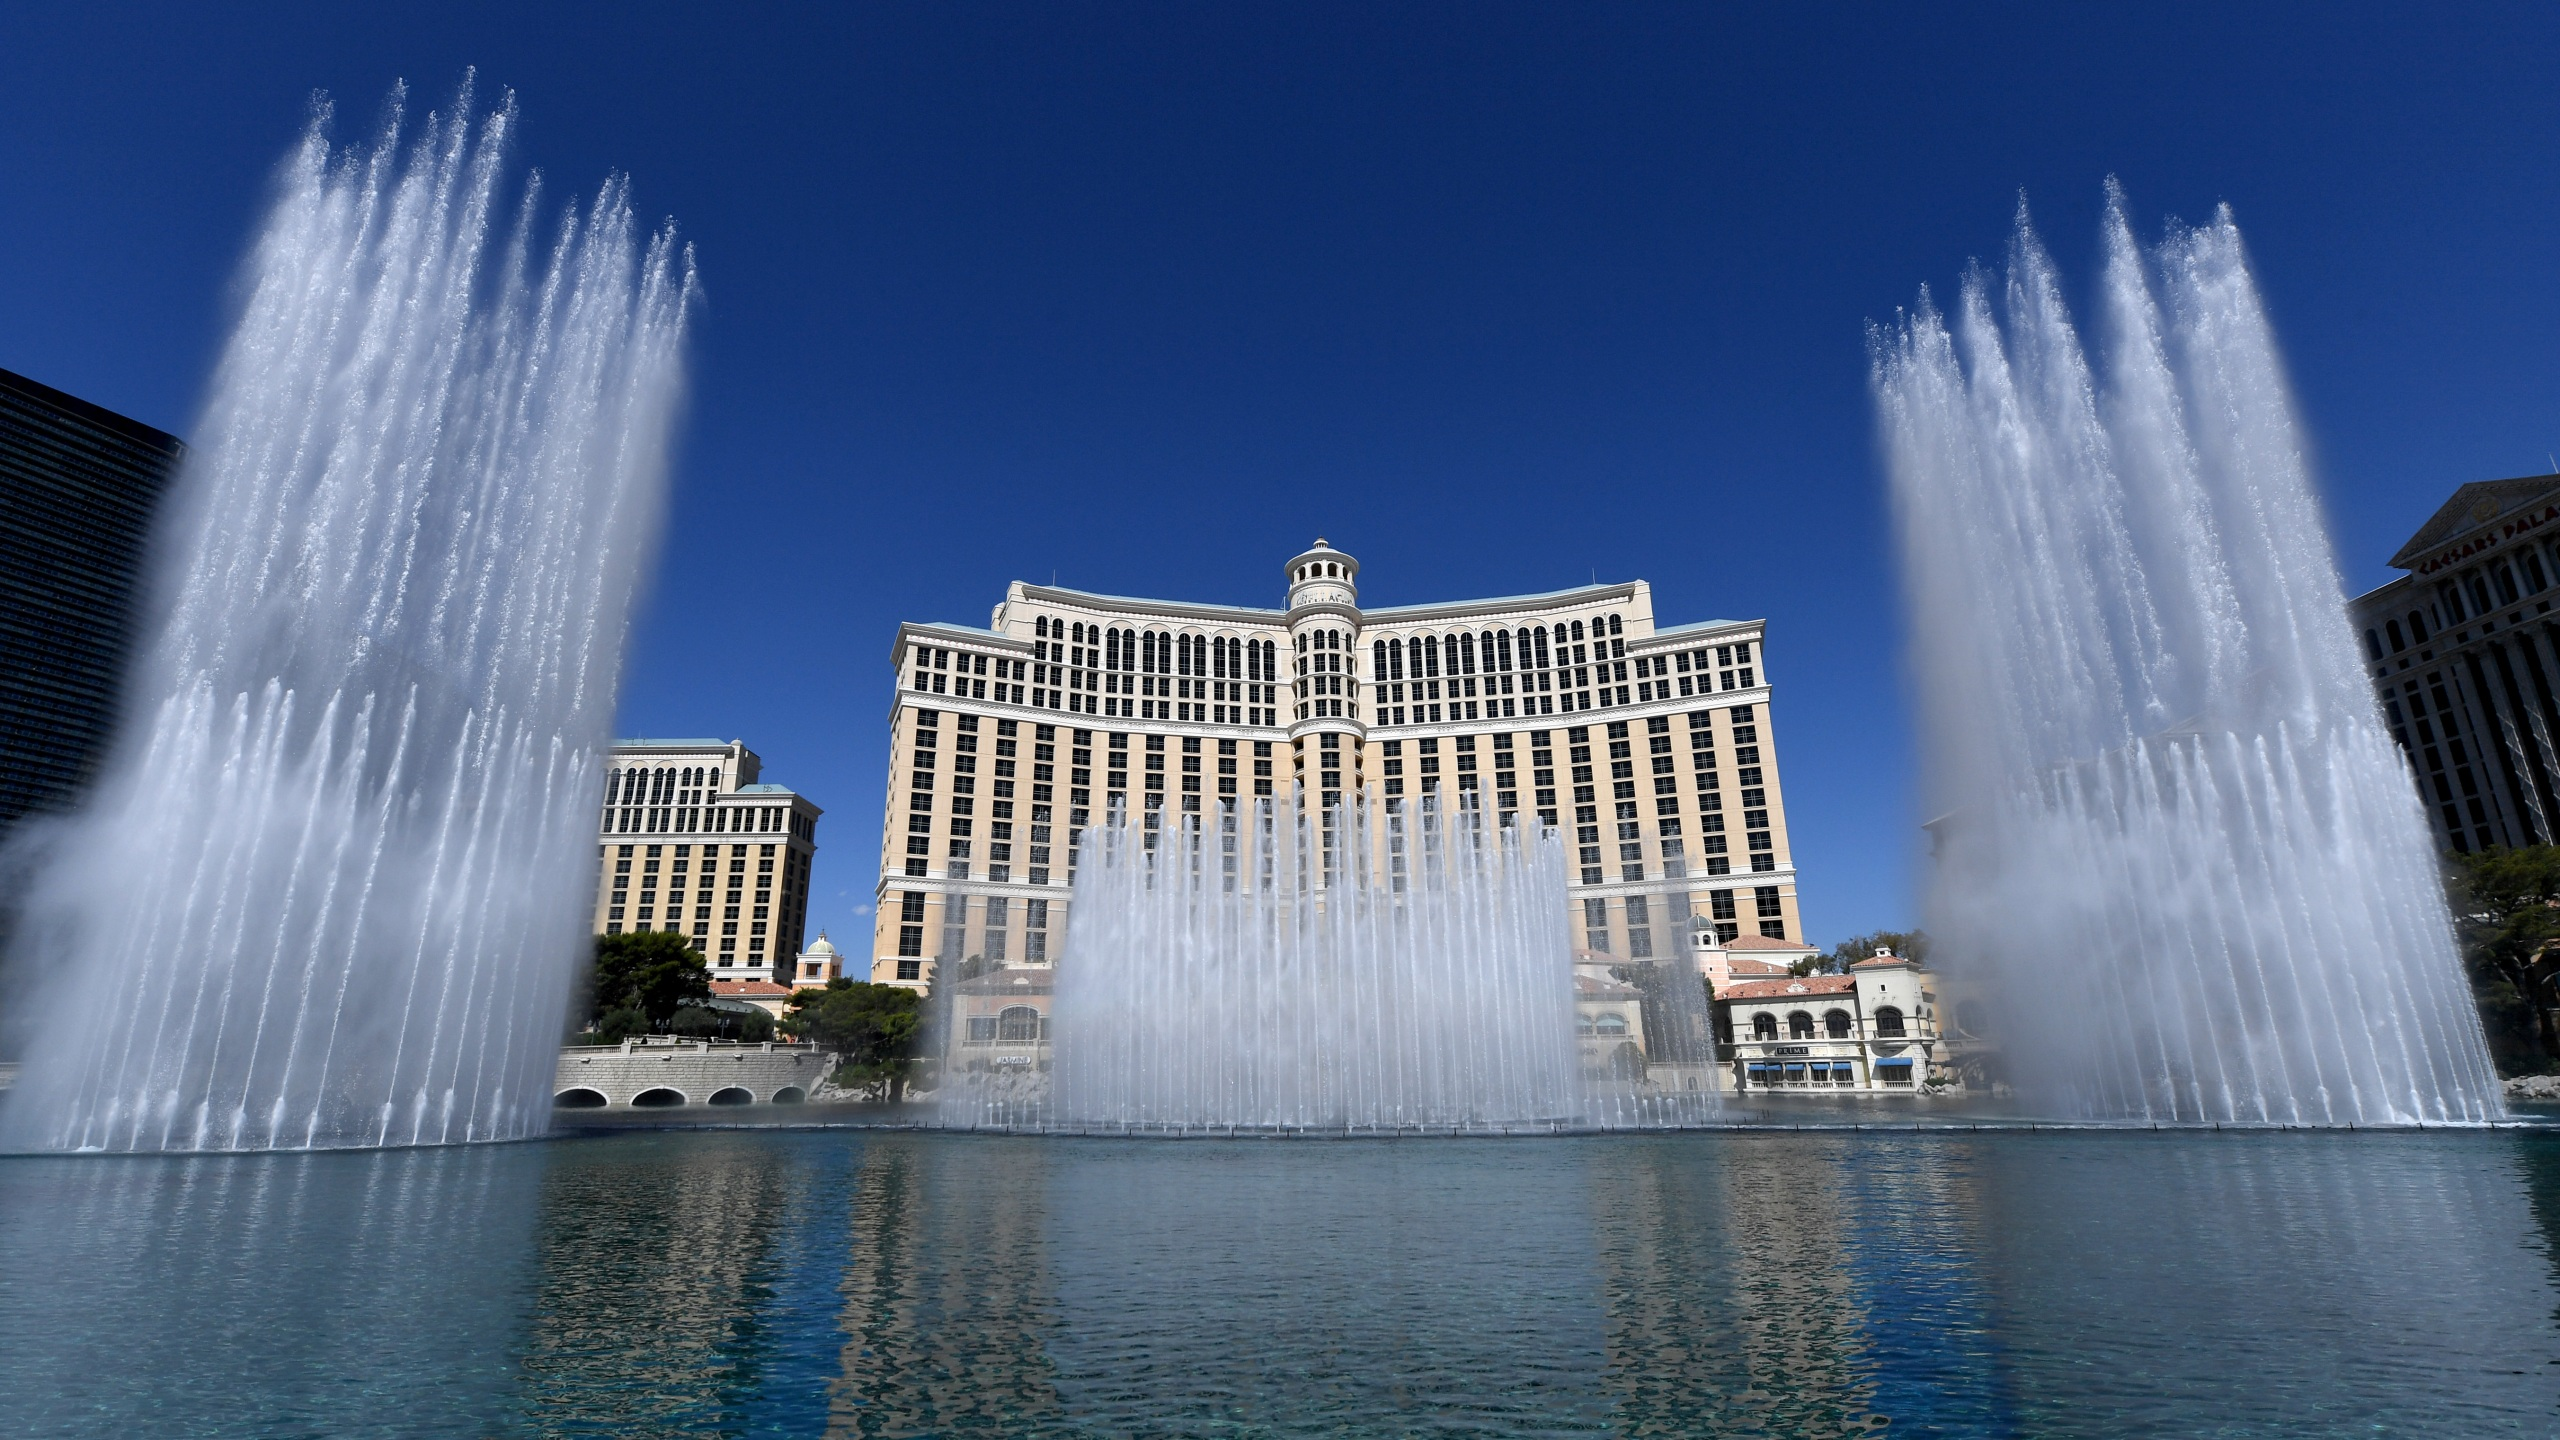 The Fountains of Bellagio launch for the first time since the Las Vegas resort closed on March 17 because of the coronavirus pandemic on June 4, 2020. (Ethan Miller / Getty Images)